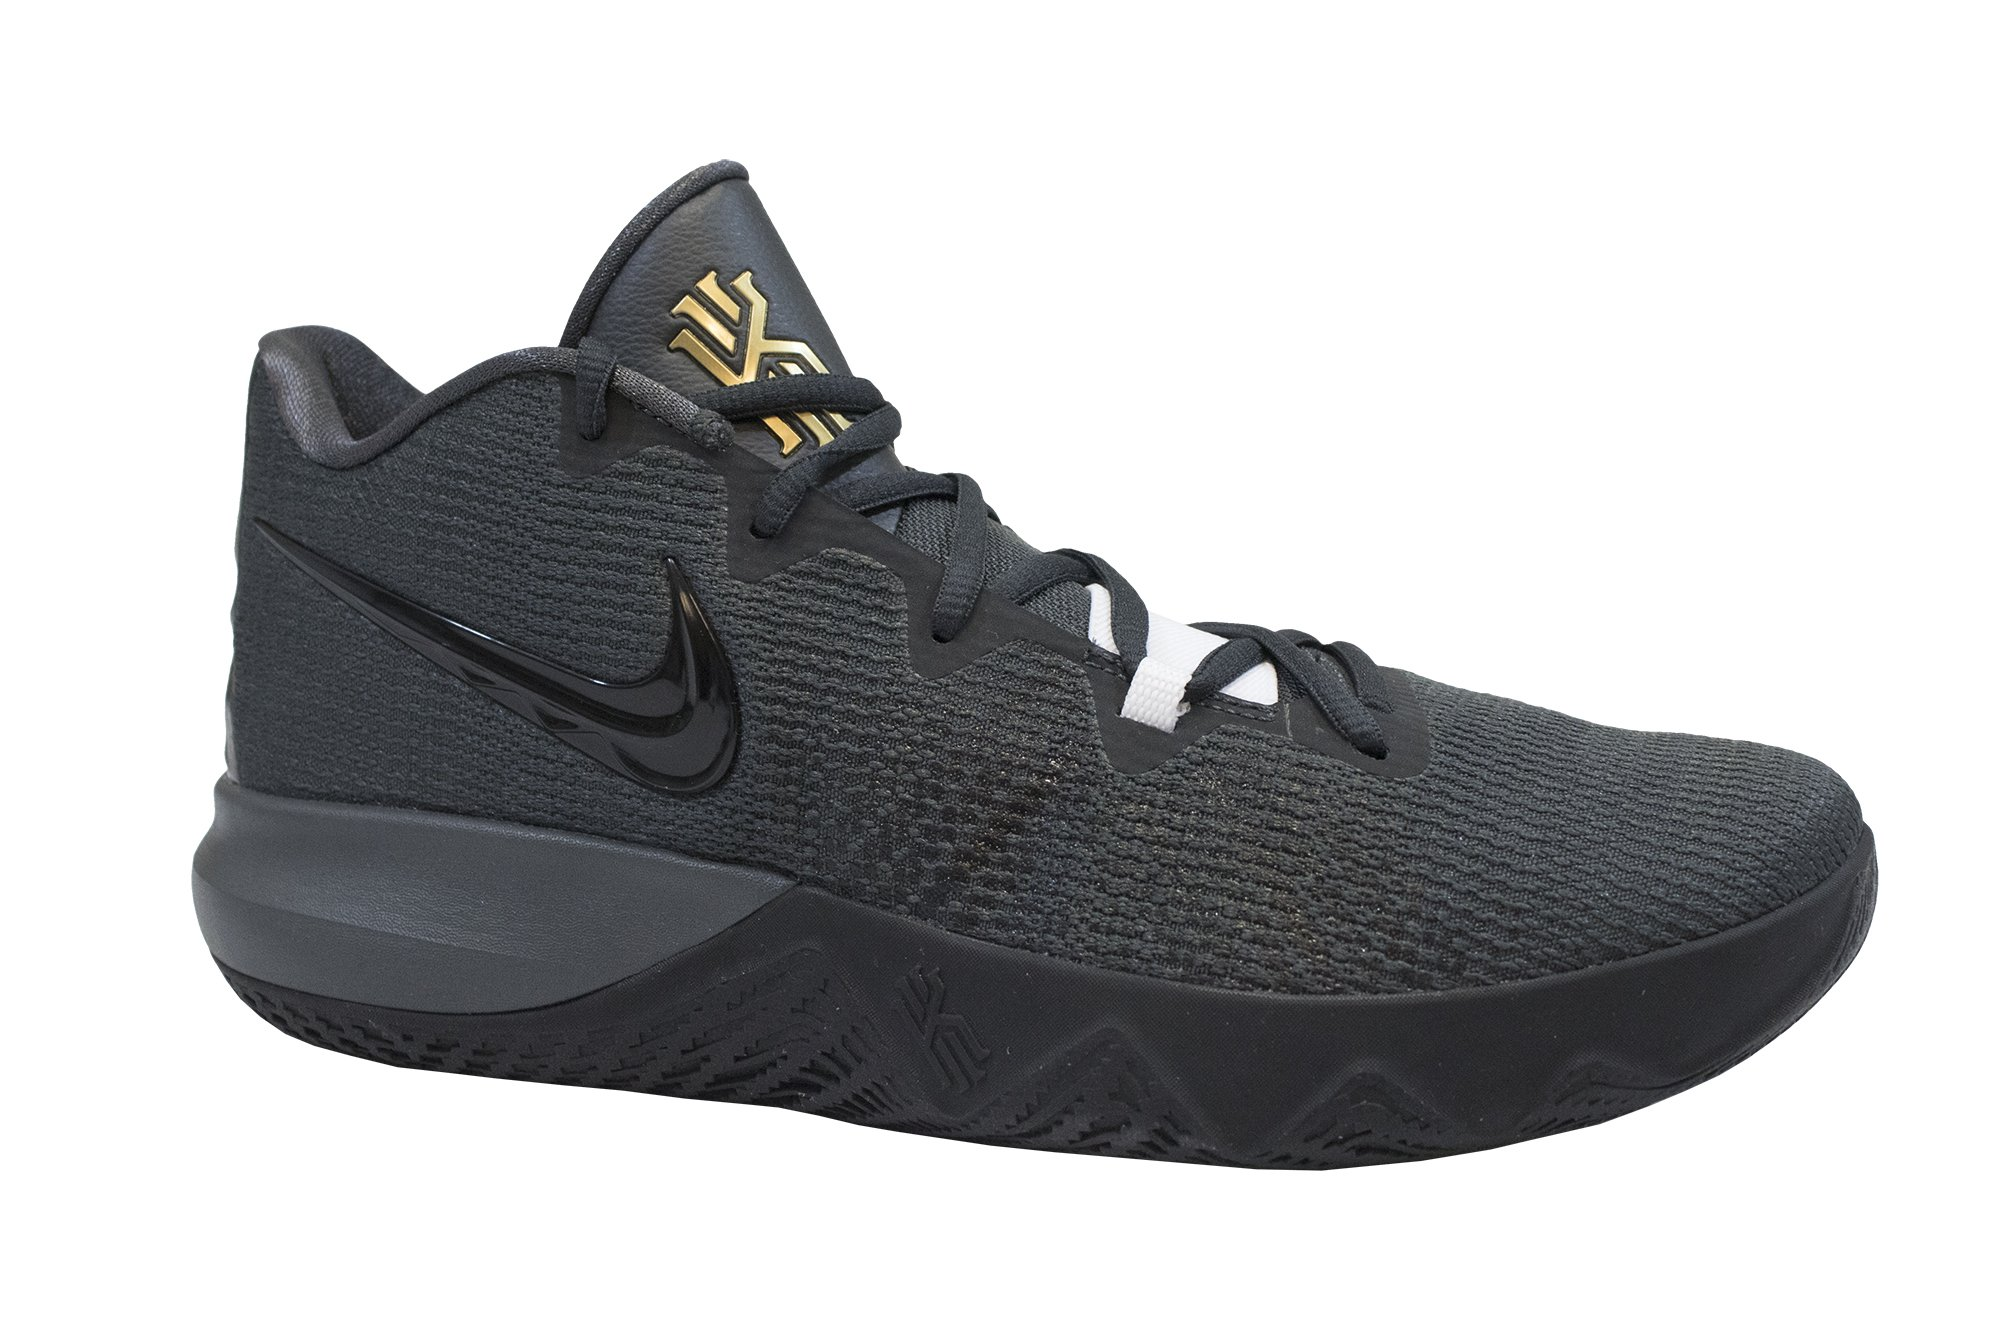 Nike Men's Kyrie Flytrap Anthracite/Black/Metallic Gold Size 8.5 M US